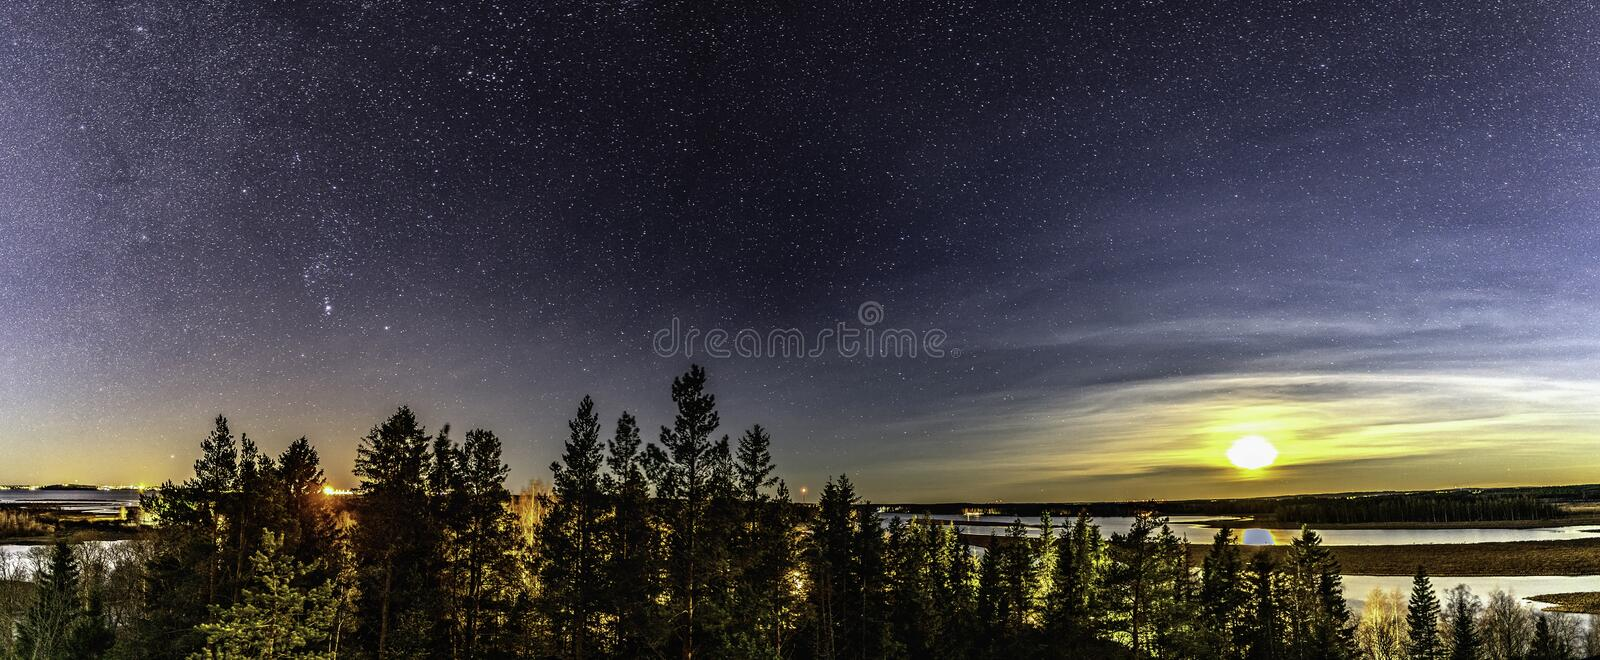 Panorama of full moon and stars in clear sky shines over Scandinavian wild forest, lakes, swamps, long exposure night photo, stock photography